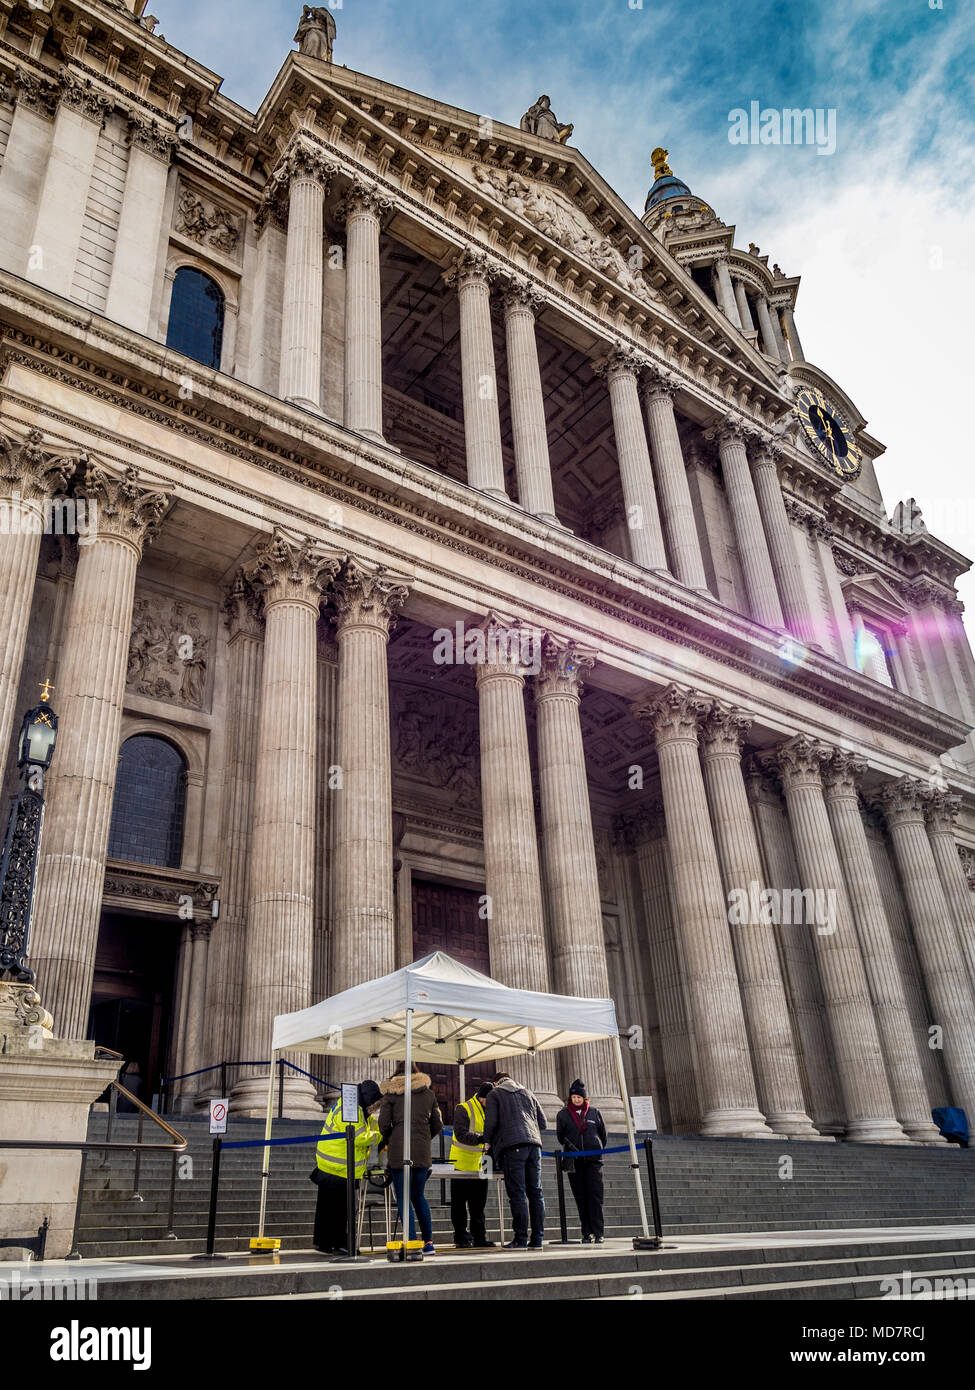 Security and bag check outside St Paul's Cathedral, London, UK as a result of terrorist attacks in the capital. Stock Photo